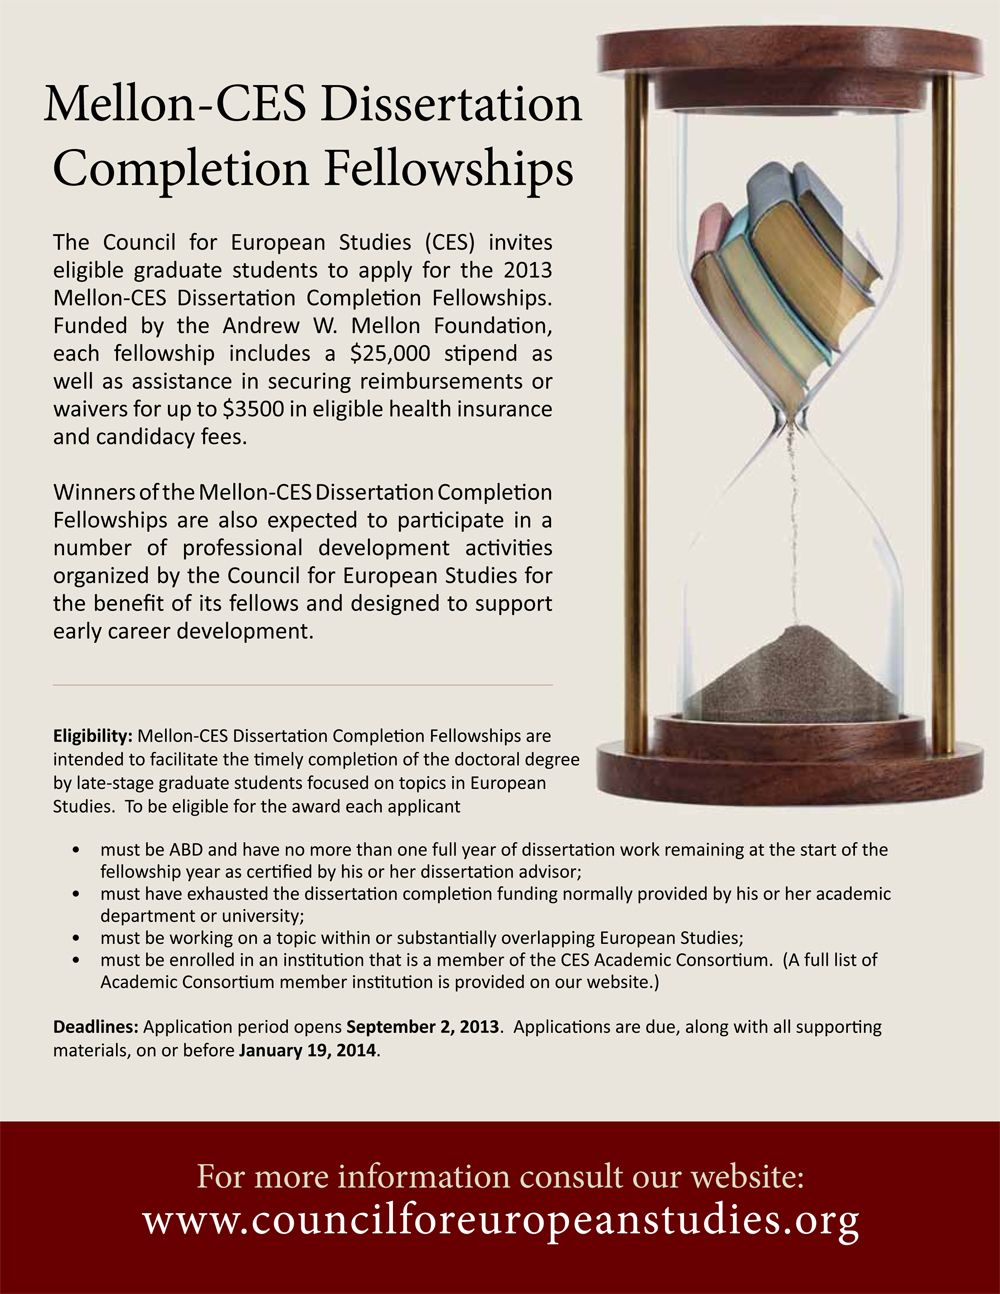 Dissertation completion fellowships